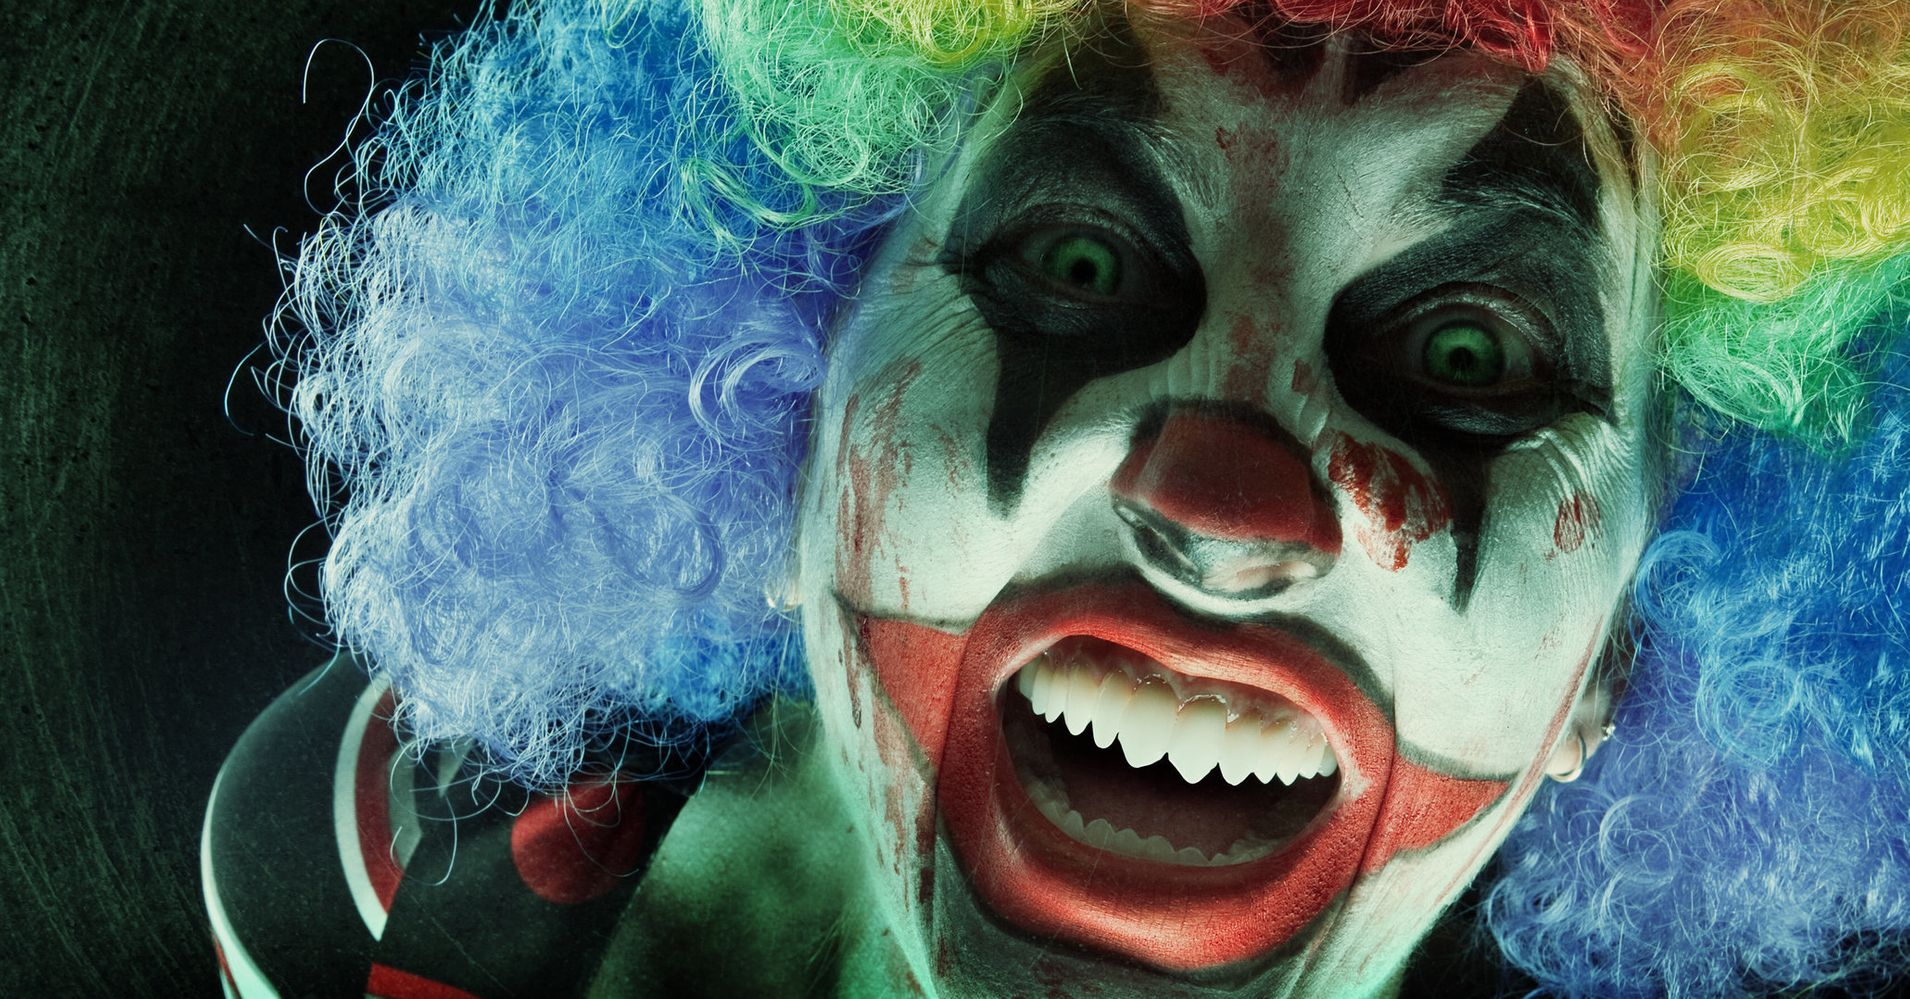 police probe reports of armed creepy clowns scaring children huffpost